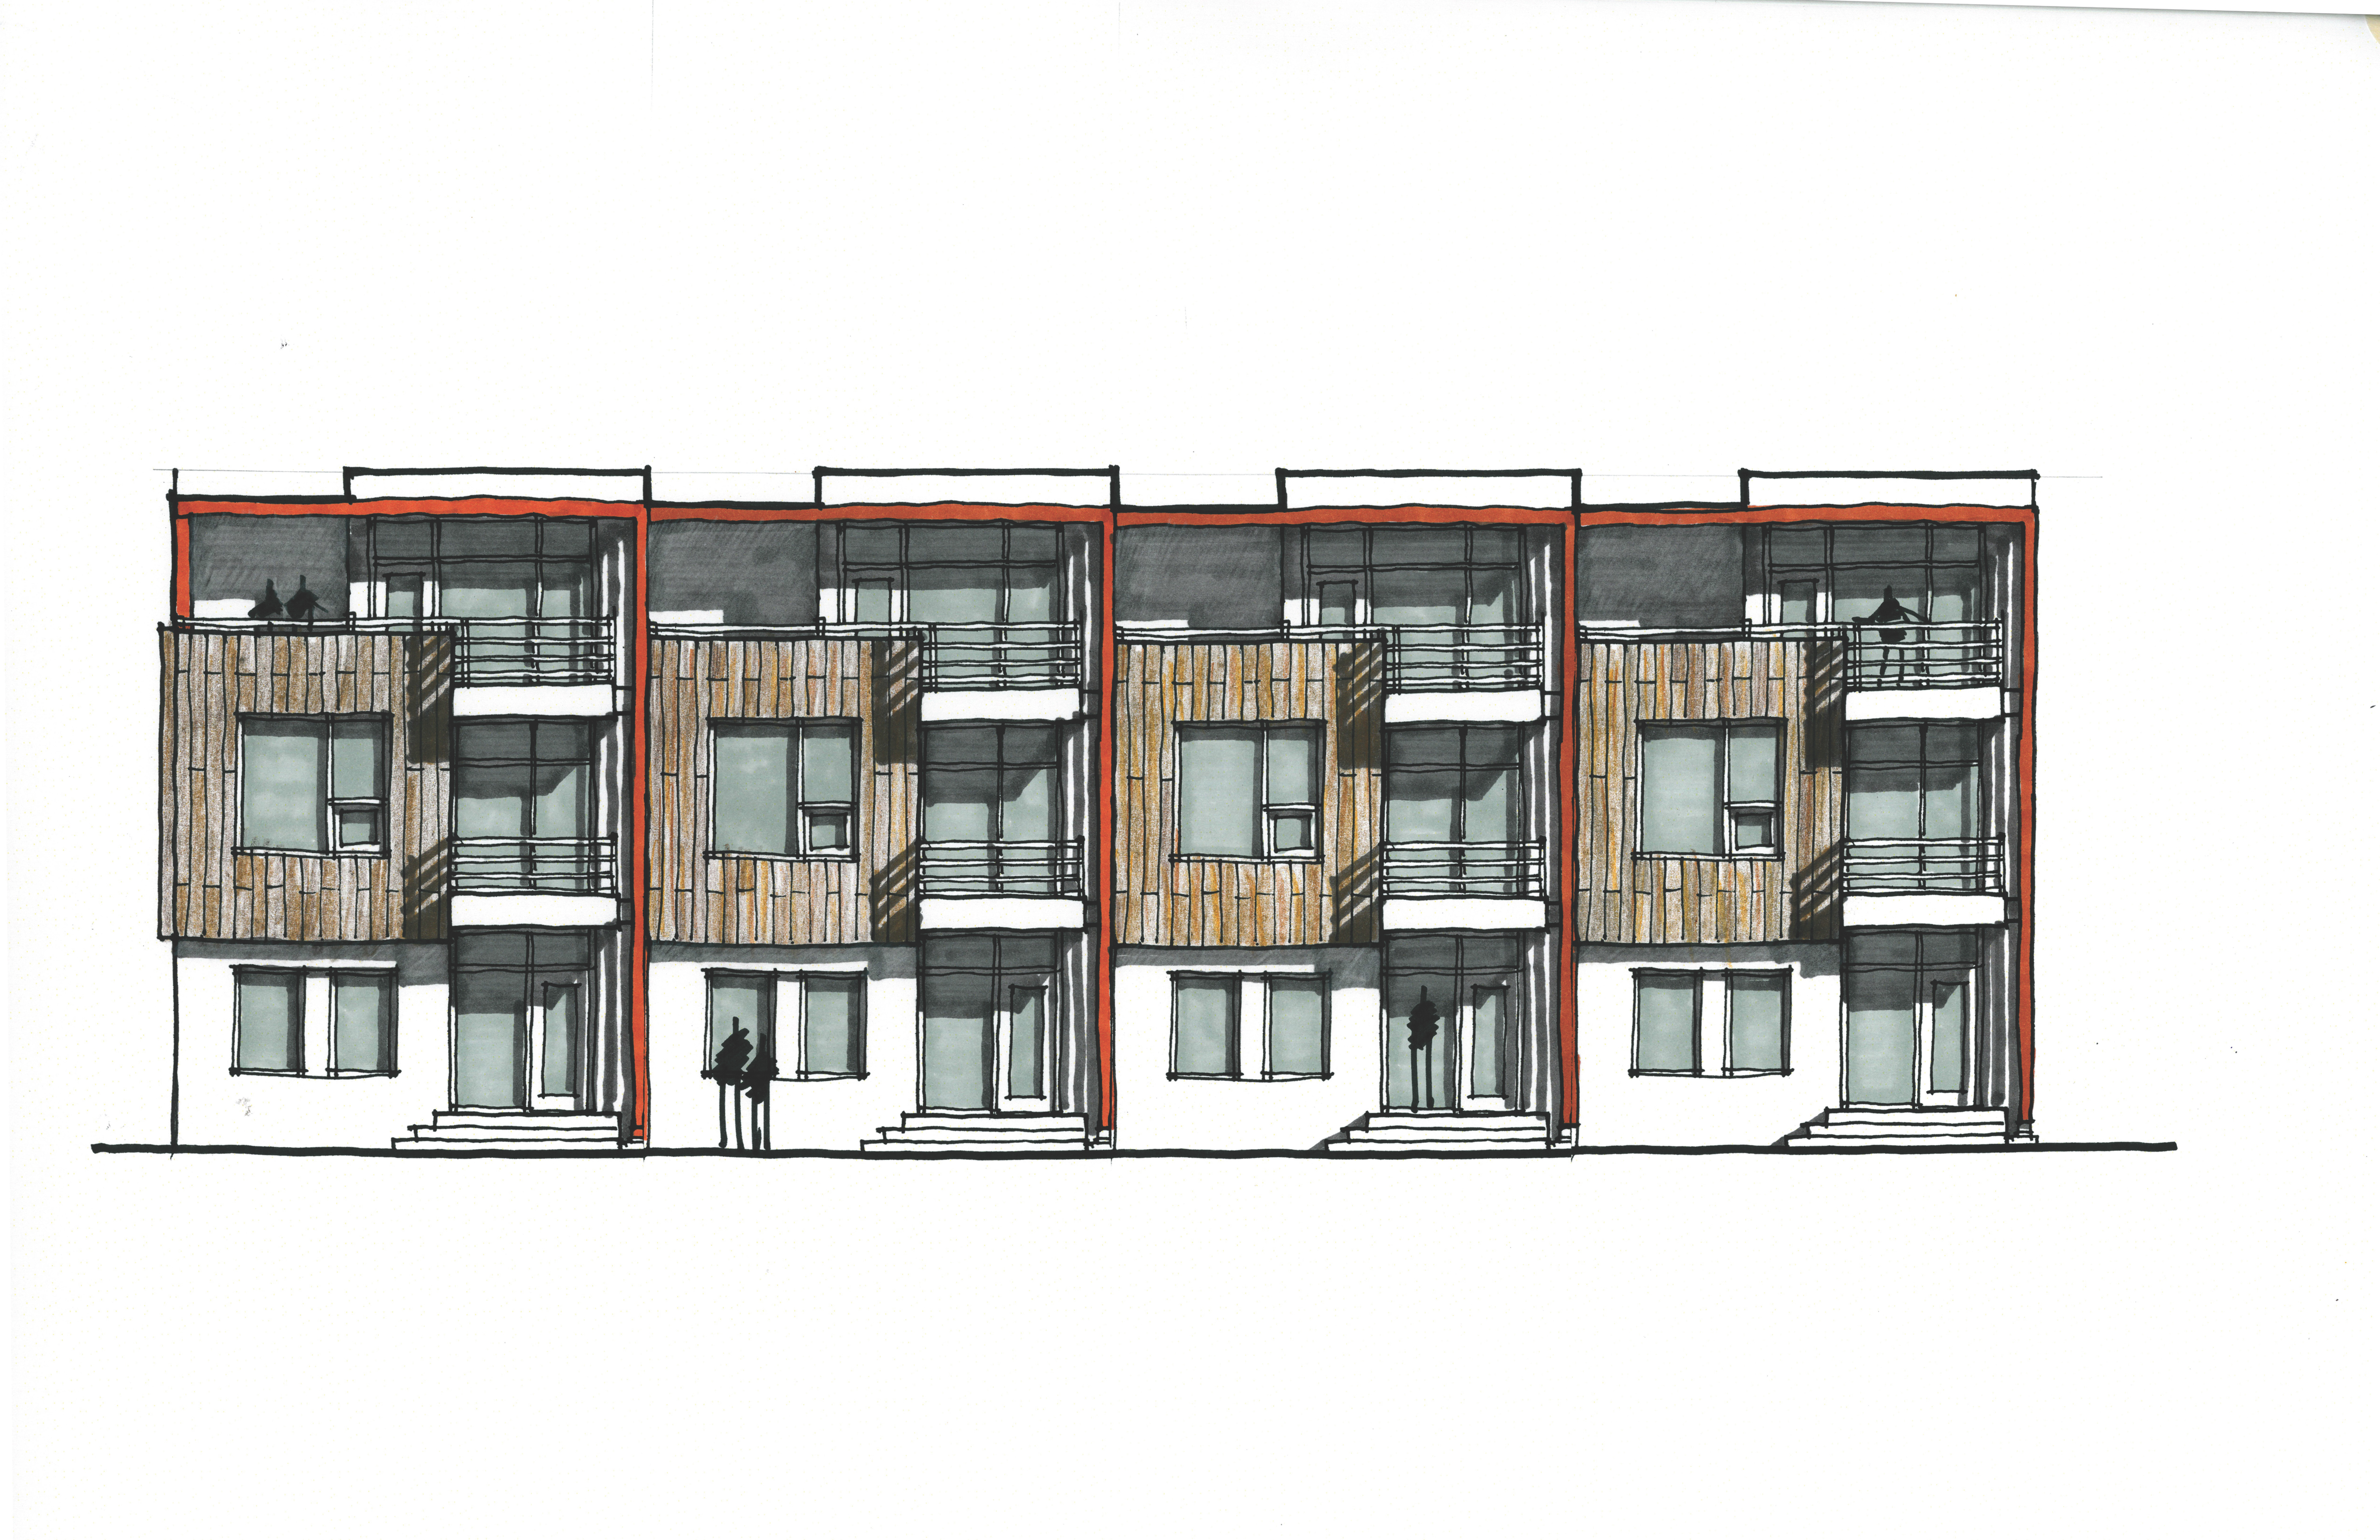 12th & Hargrave 3-Story Townhomes